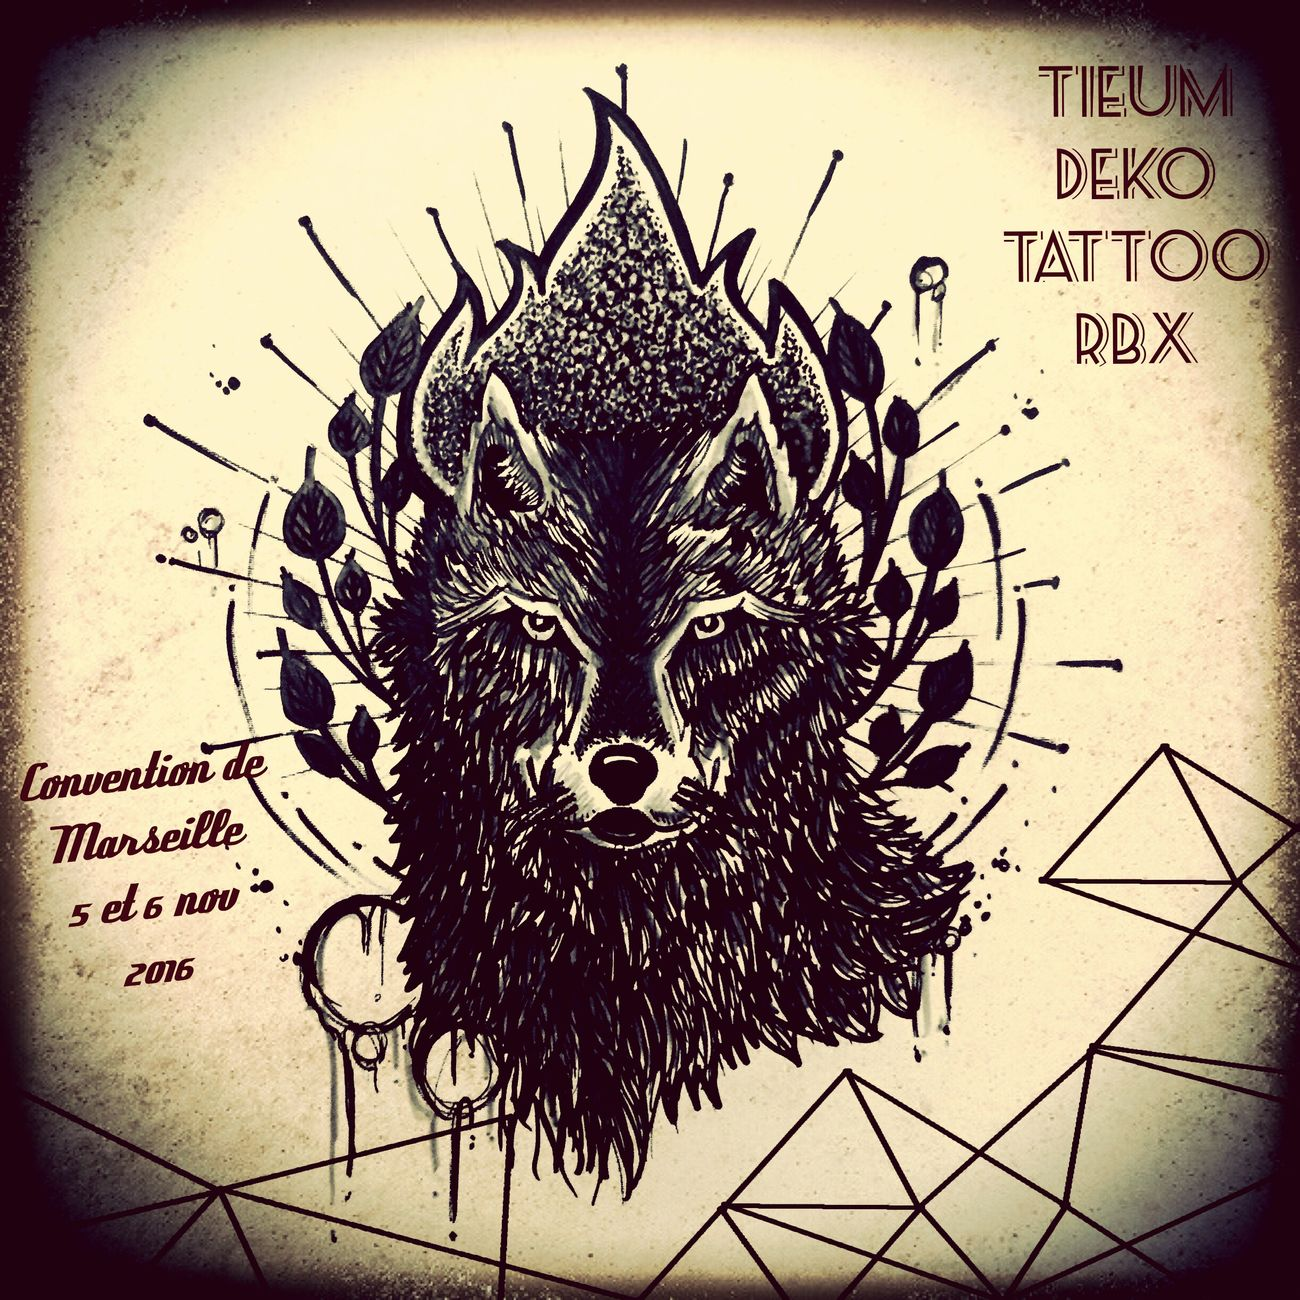 Convention Tattooconvention Ink Tattoo Awesome Design Tattoo Design Amazing Tattoos Art, Drawing, Creativity Tattoo ❤ Tattooist Blackwork Tattooartist  Tieumdekotattoo Tieumdeko Lifestyles Tattooshop Drawing Draw